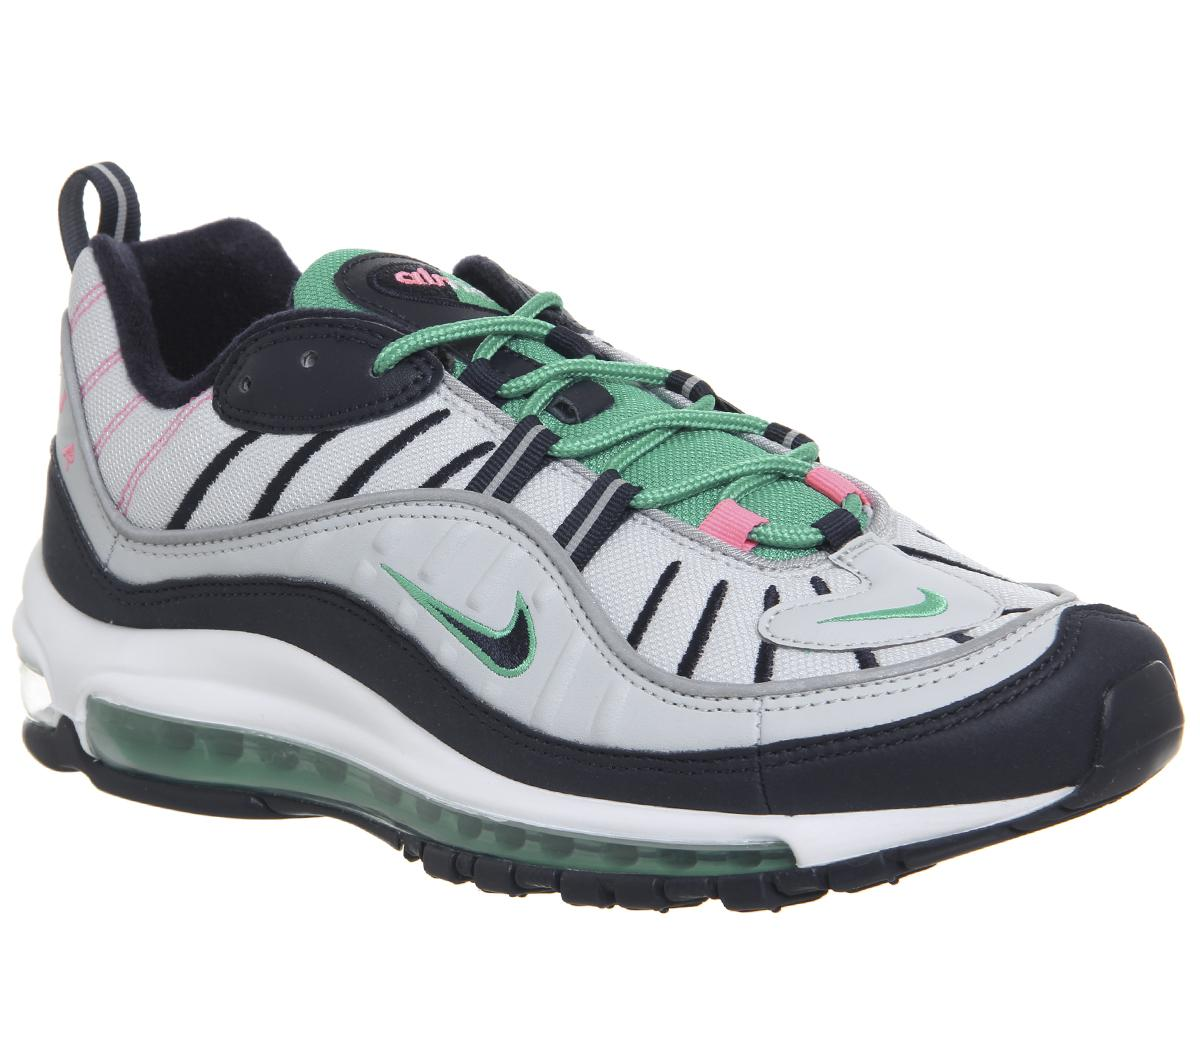 Muelle del puente Arqueólogo Preciso  Nike Air Max 98 Trainers Pure Platinum Obsidian Kinetic Green - His trainers